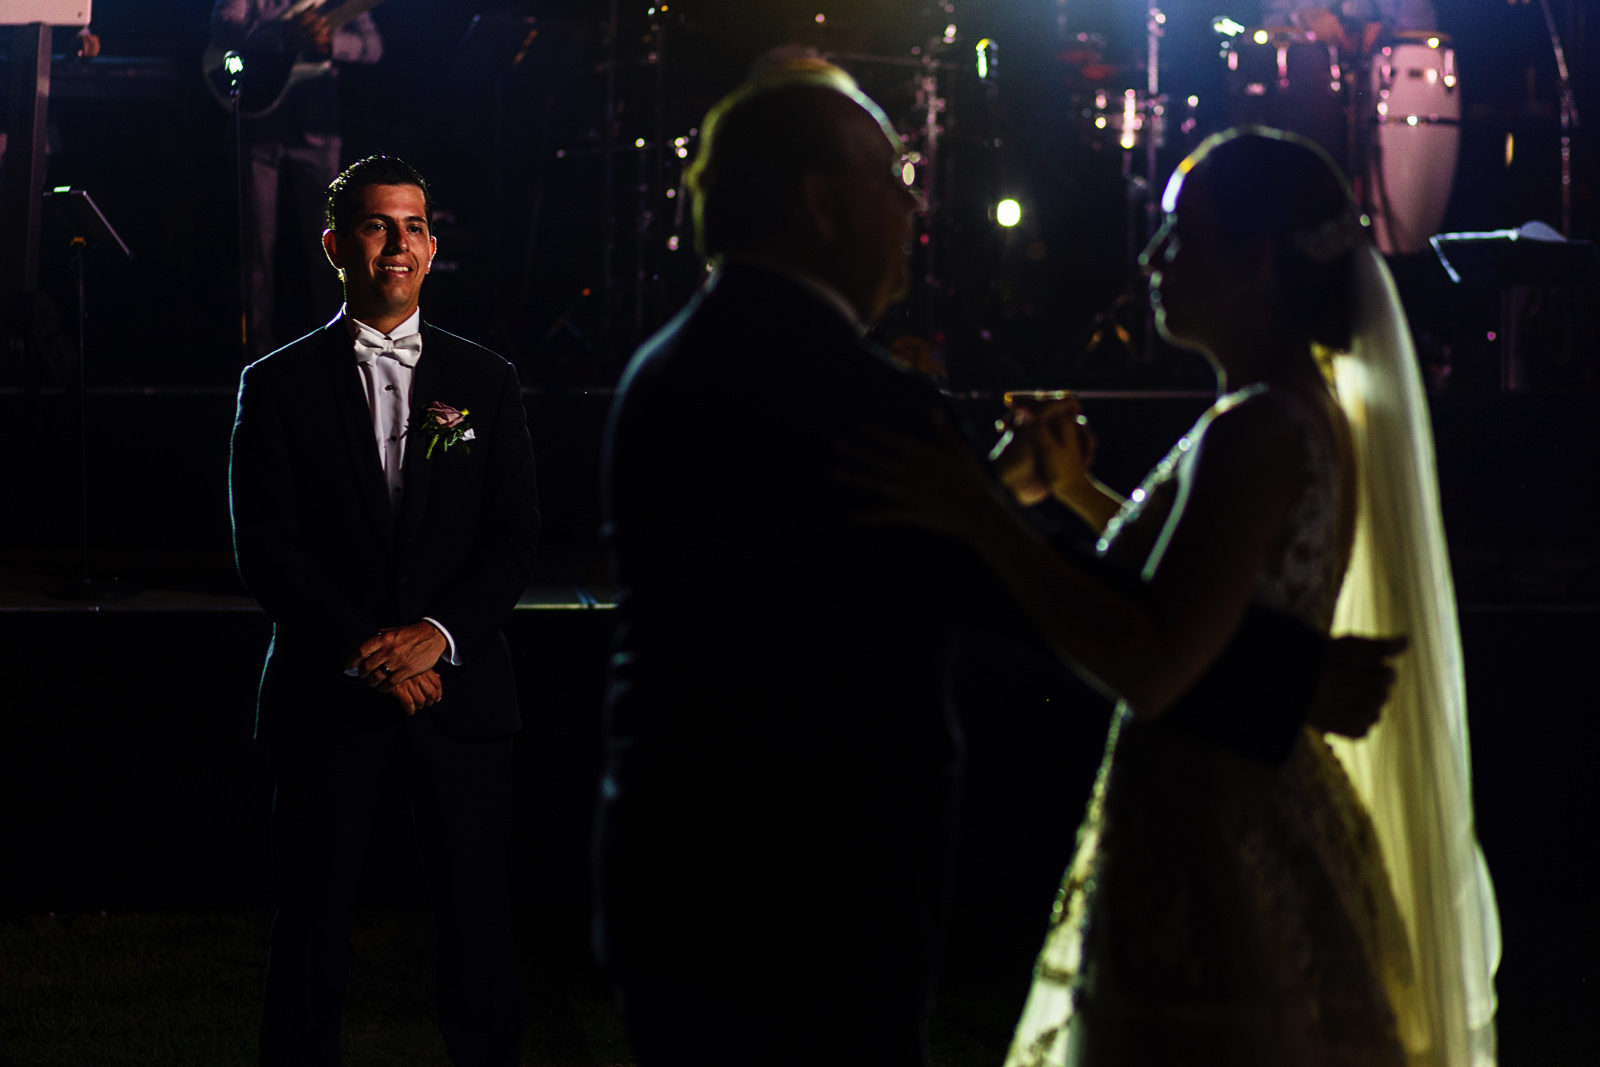 Groom smiling as he sees the father and bride dance